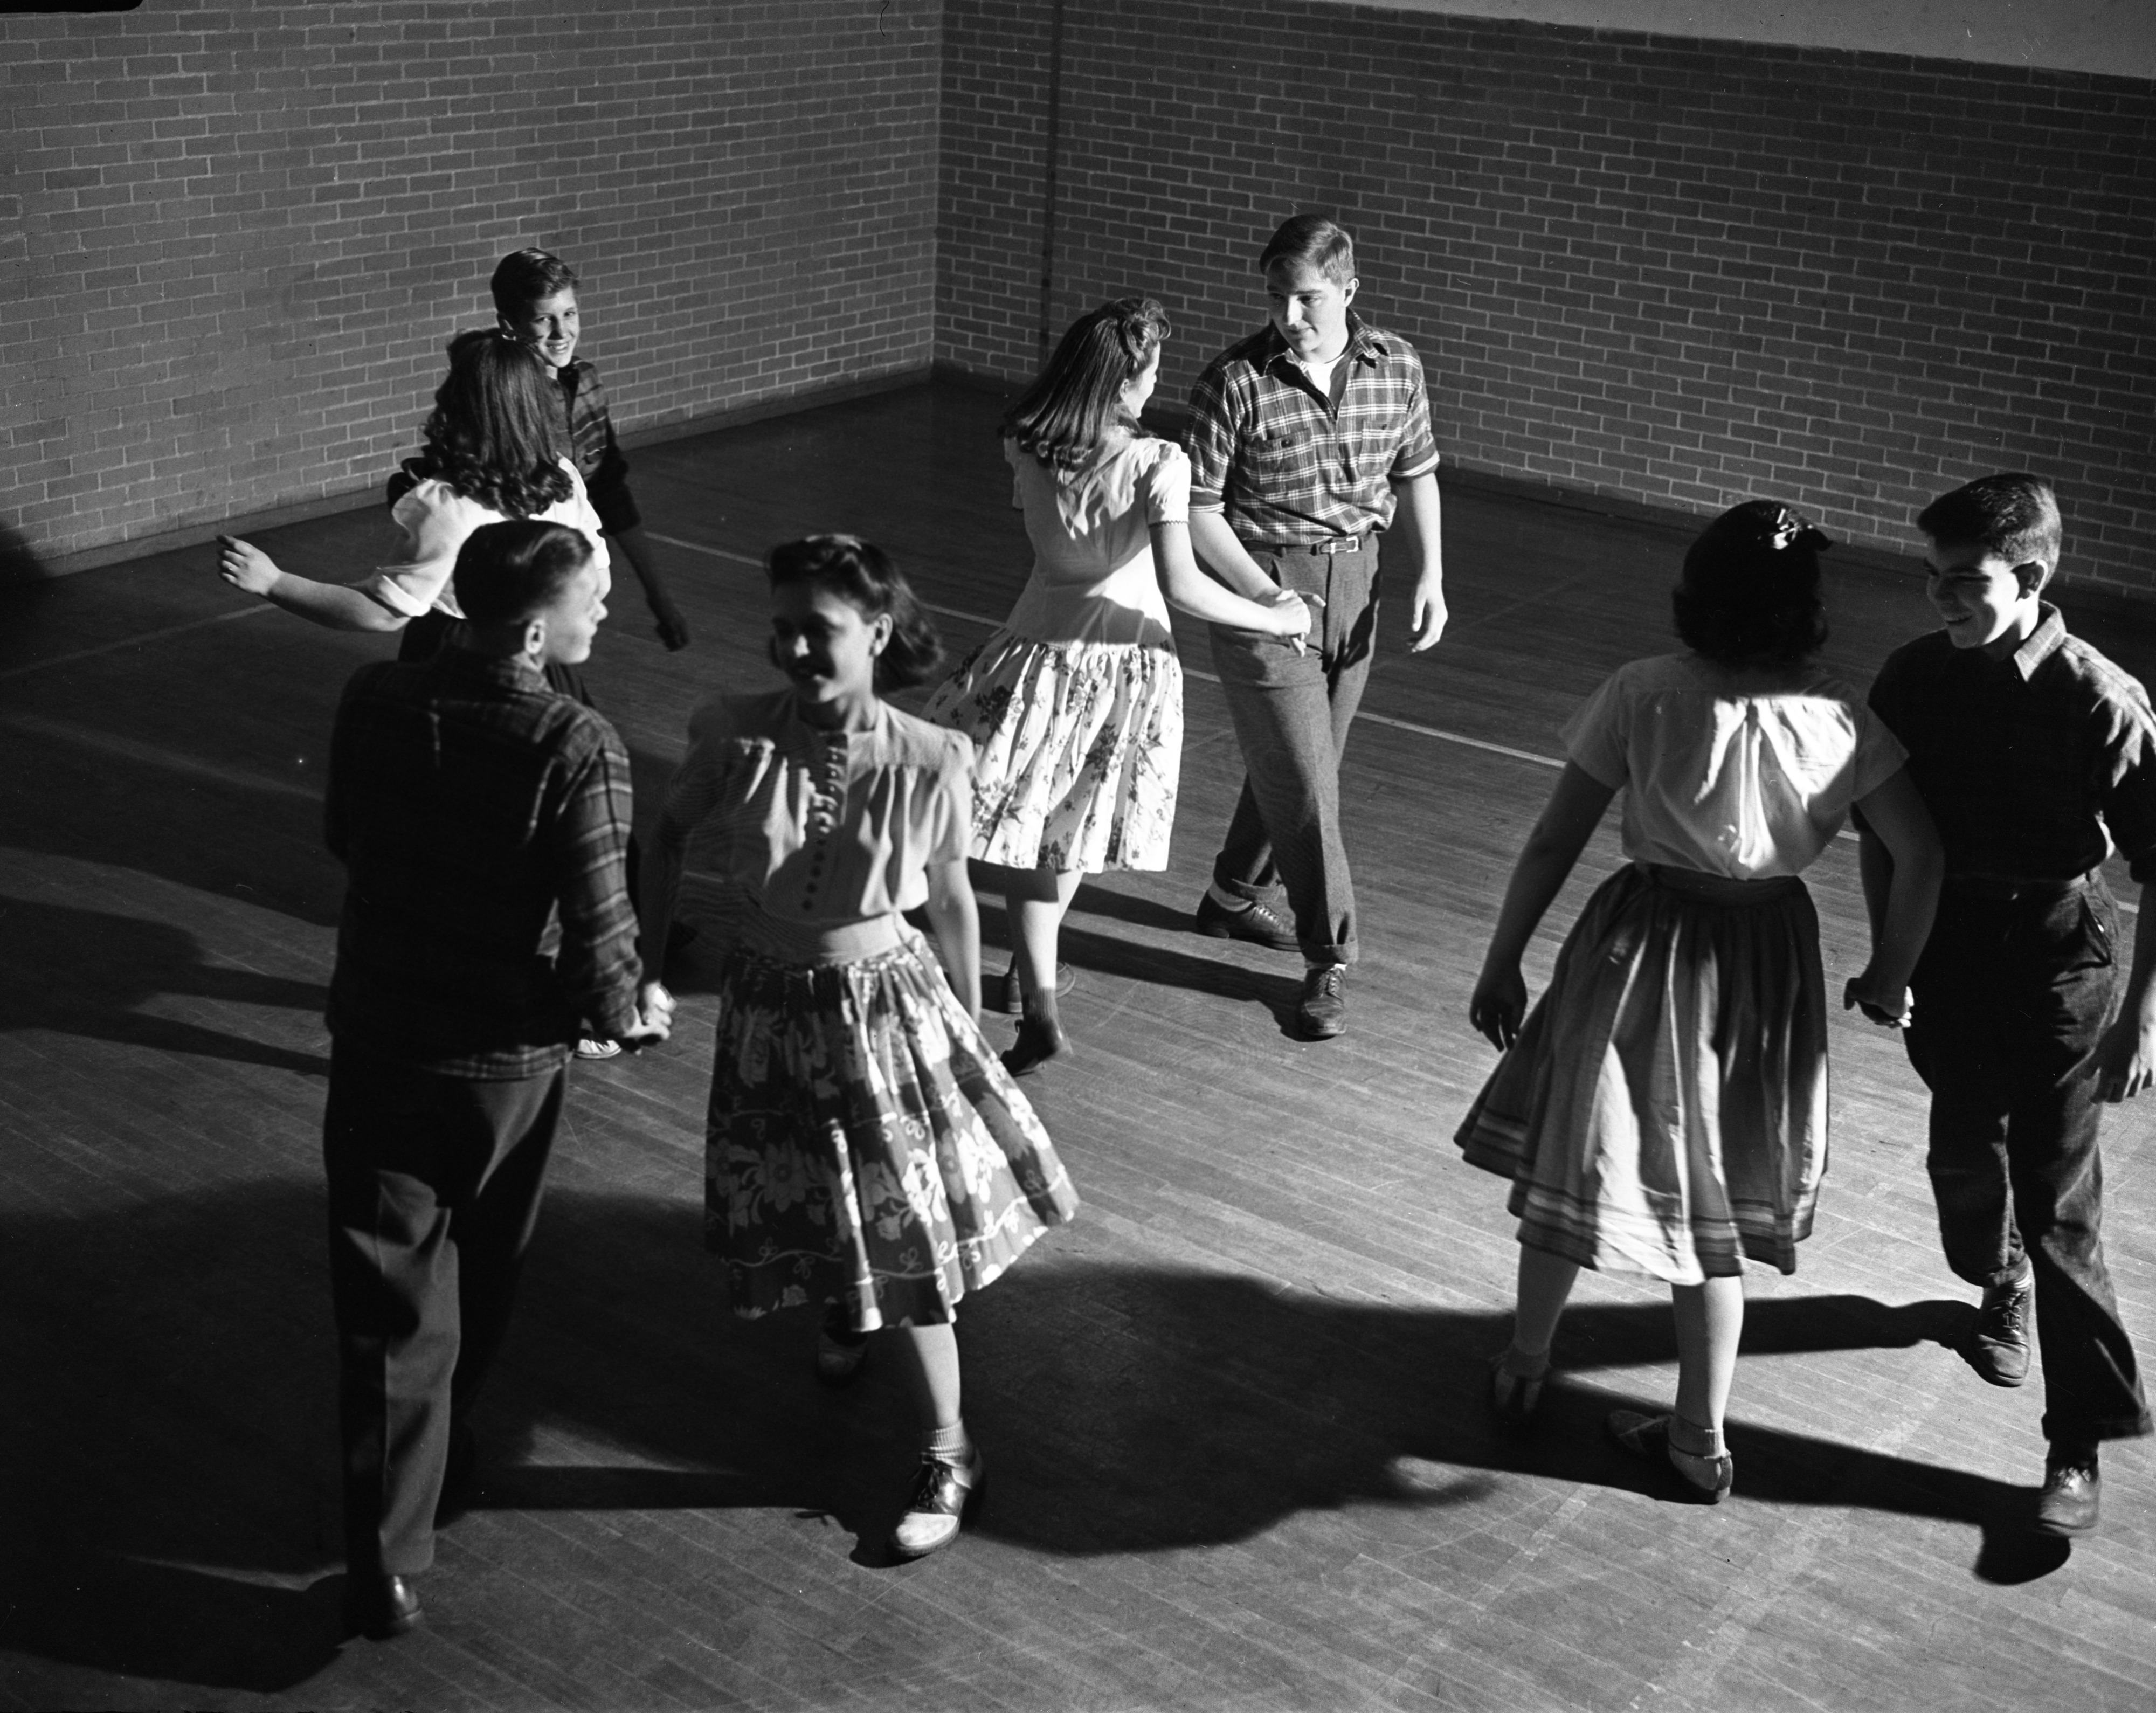 Cowboy Dance at Ann Arbor High School, 1942 image